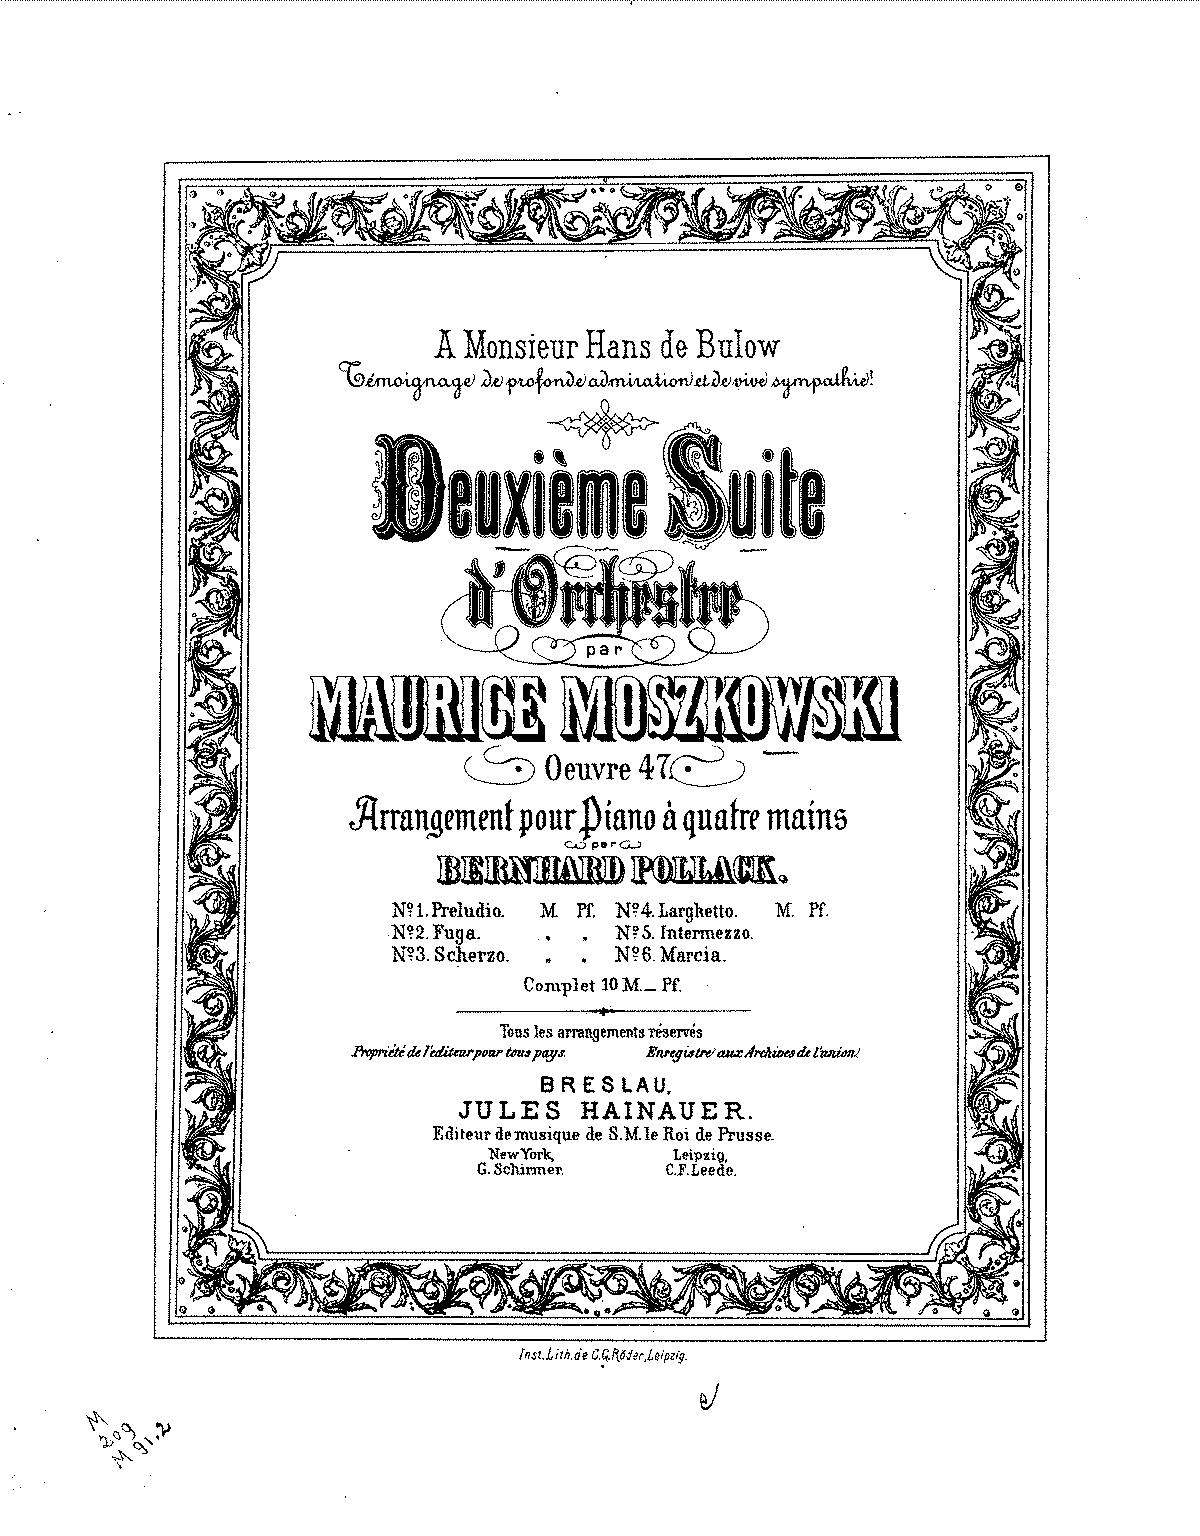 Moszkowski - Op.47 - 2nd Orchestral Suite (Duet).pdf